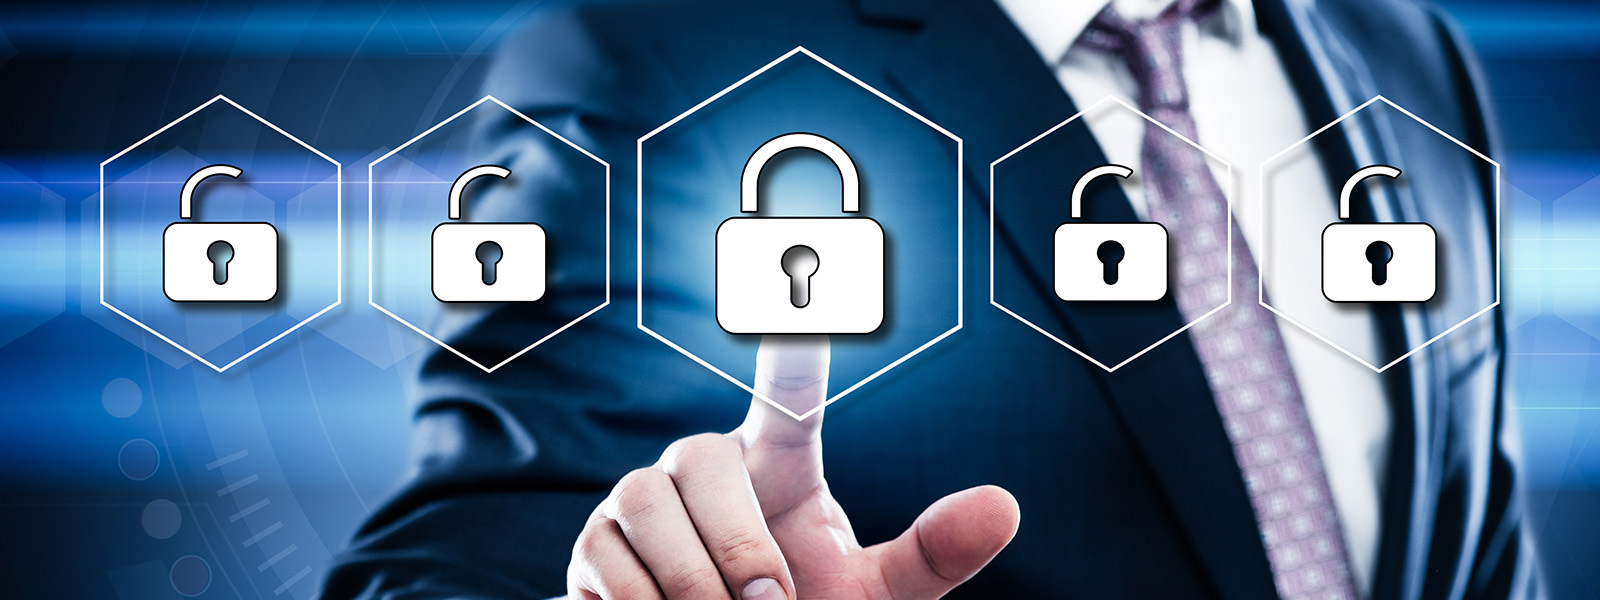 Image of man pointing to a digital lock for cybersecurity awareness